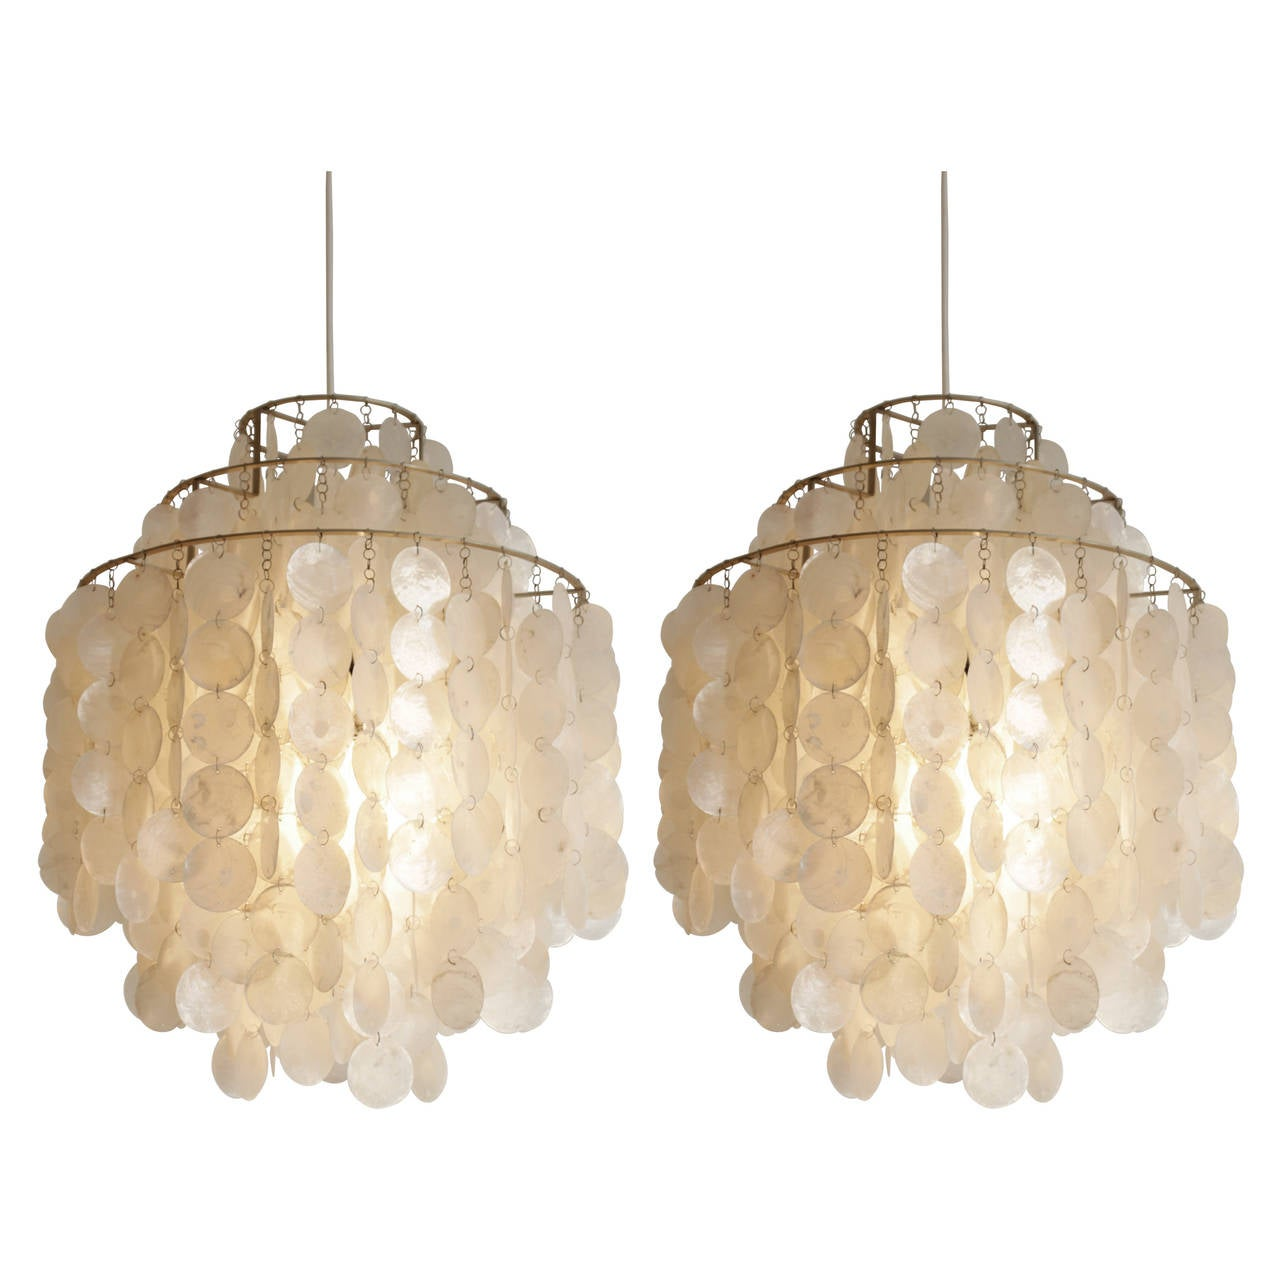 pair of verner panton fun 1 dm shell pendant lamps at 1stdibs. Black Bedroom Furniture Sets. Home Design Ideas